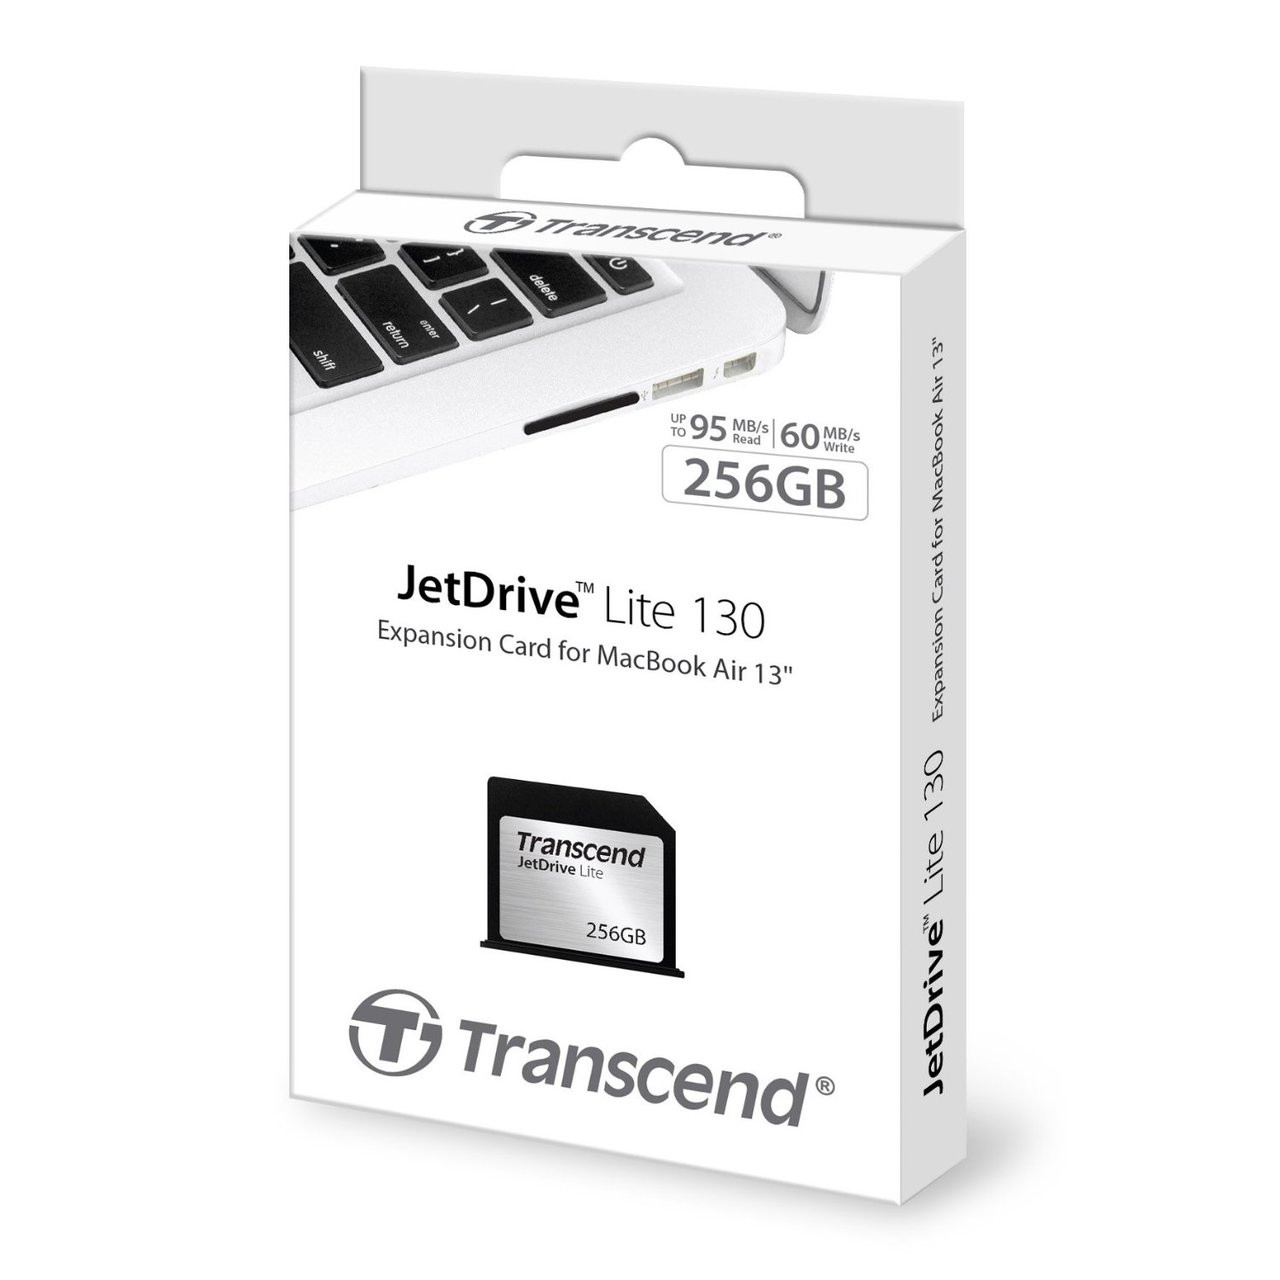 JetDrive Lite 130 removable storage expansion card 256GB for Macbook Air late 2010, mid 2011, 2012, 2013 and early 2014 ( TS256GJDL130)